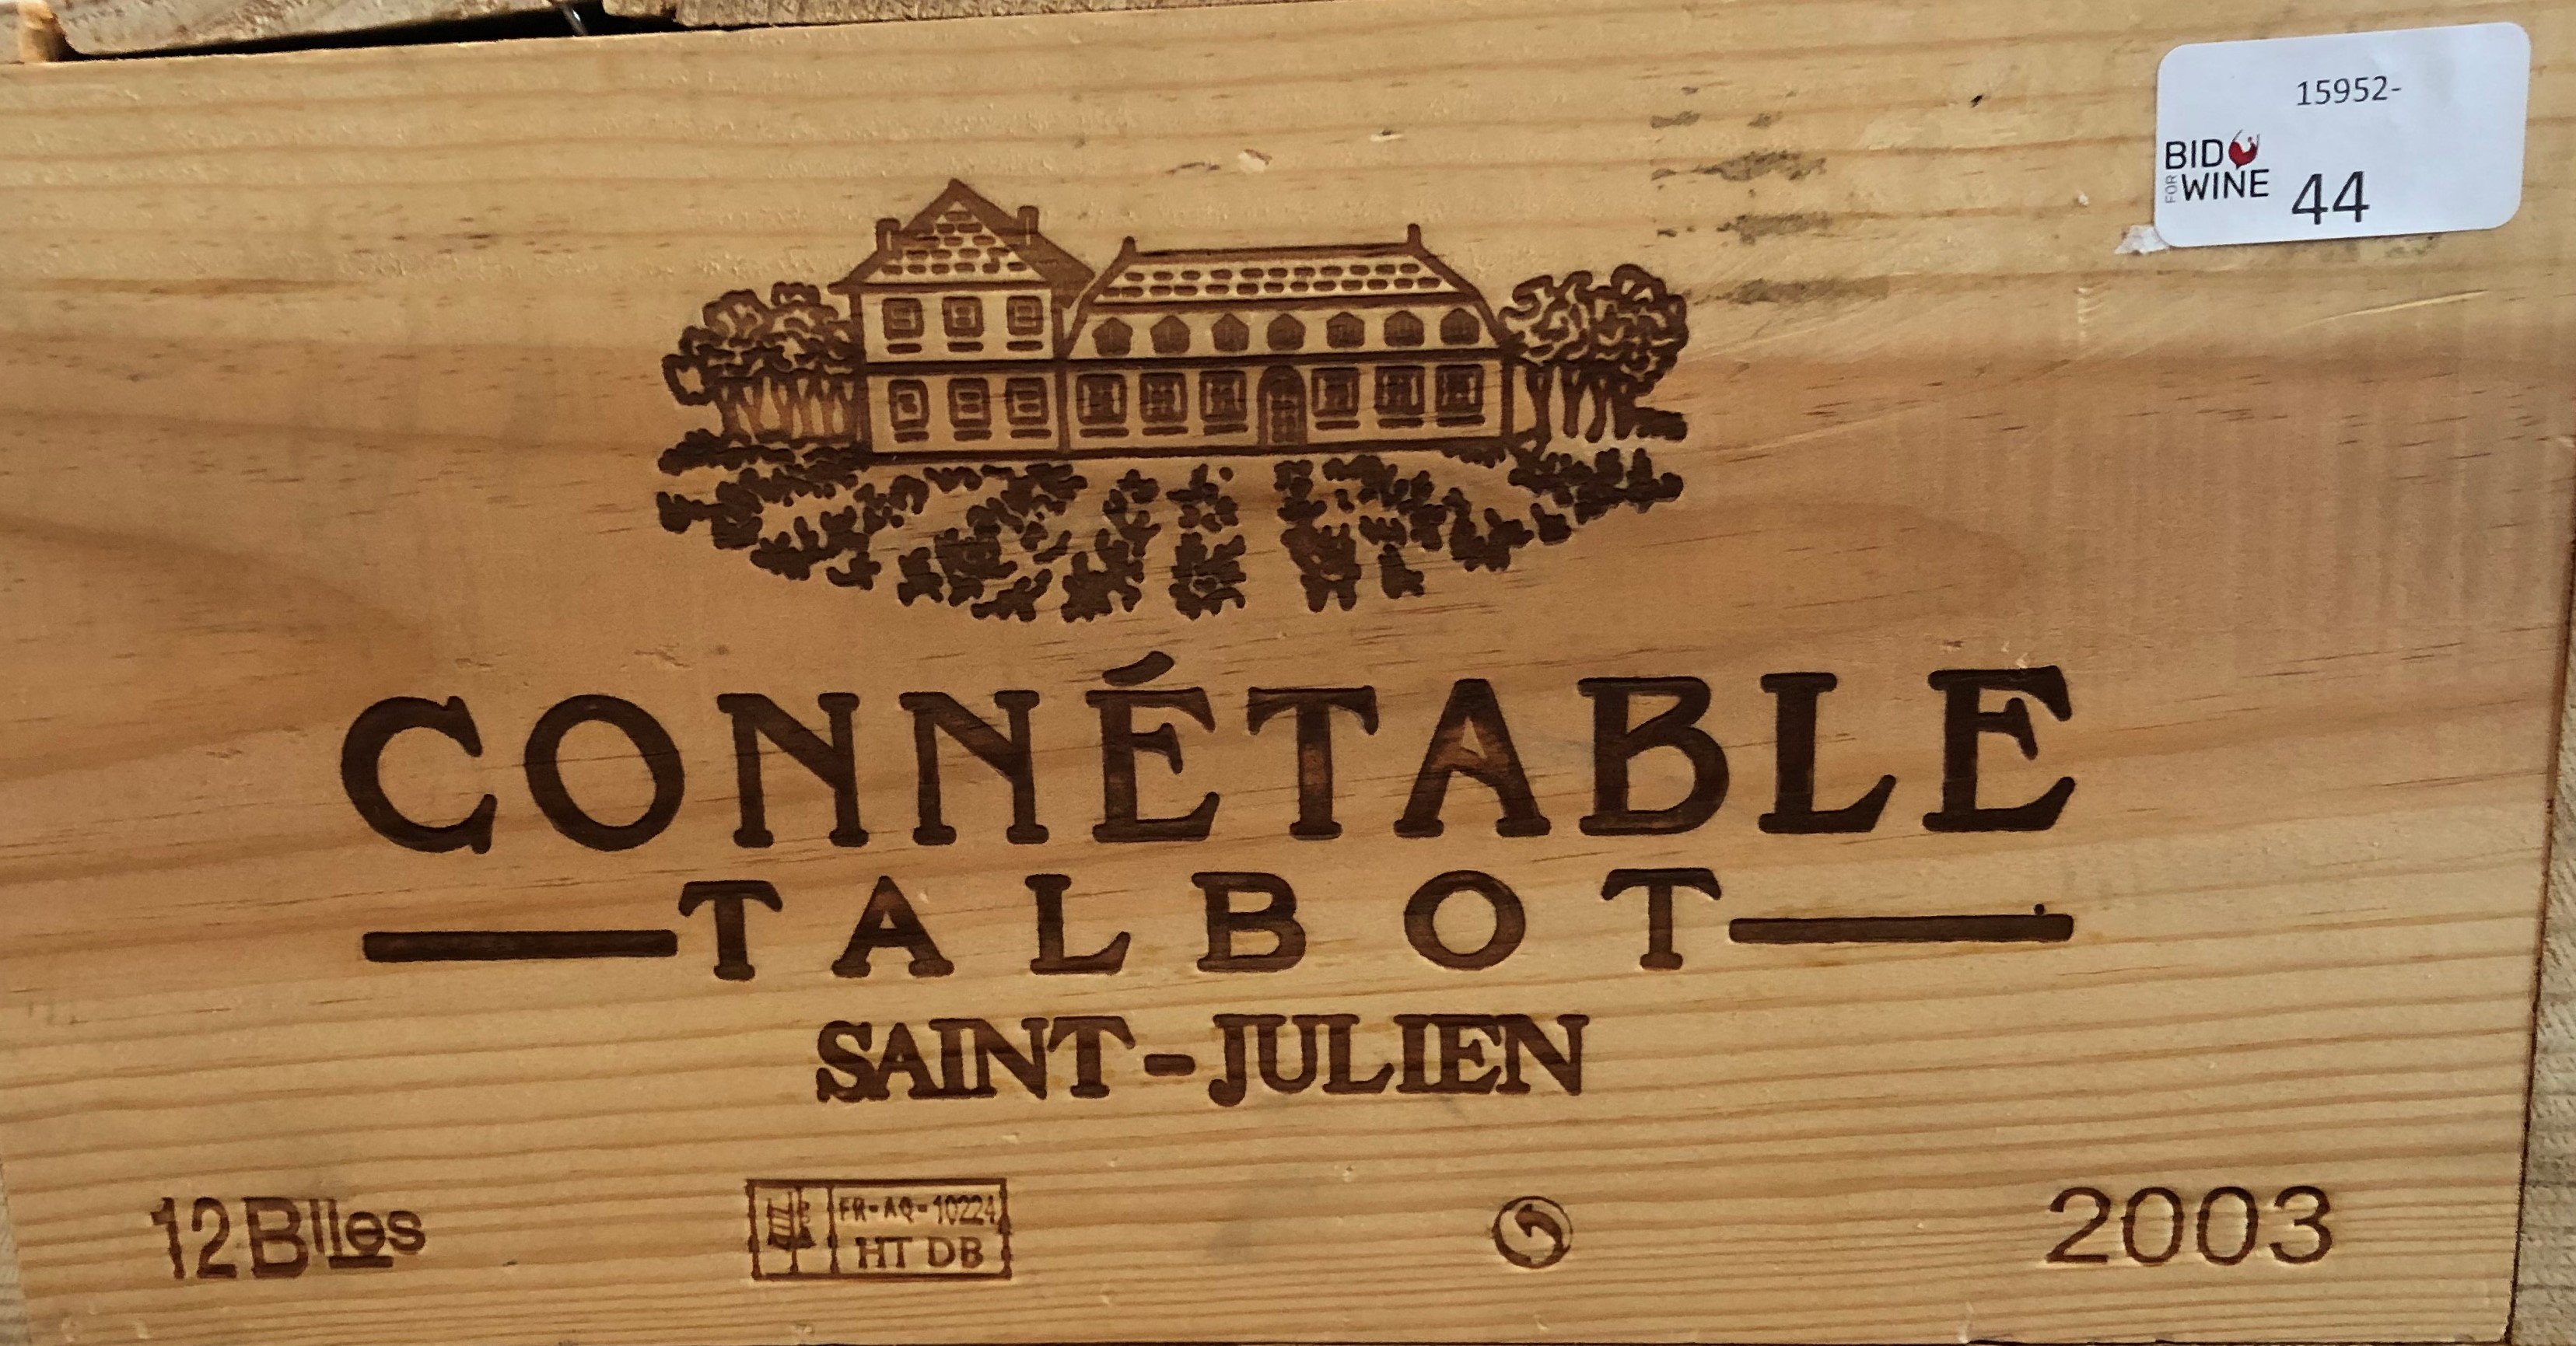 Lot 51 - 2003 Connetable de Talbot, St Julien, Bordeaux, France, 12 bottles